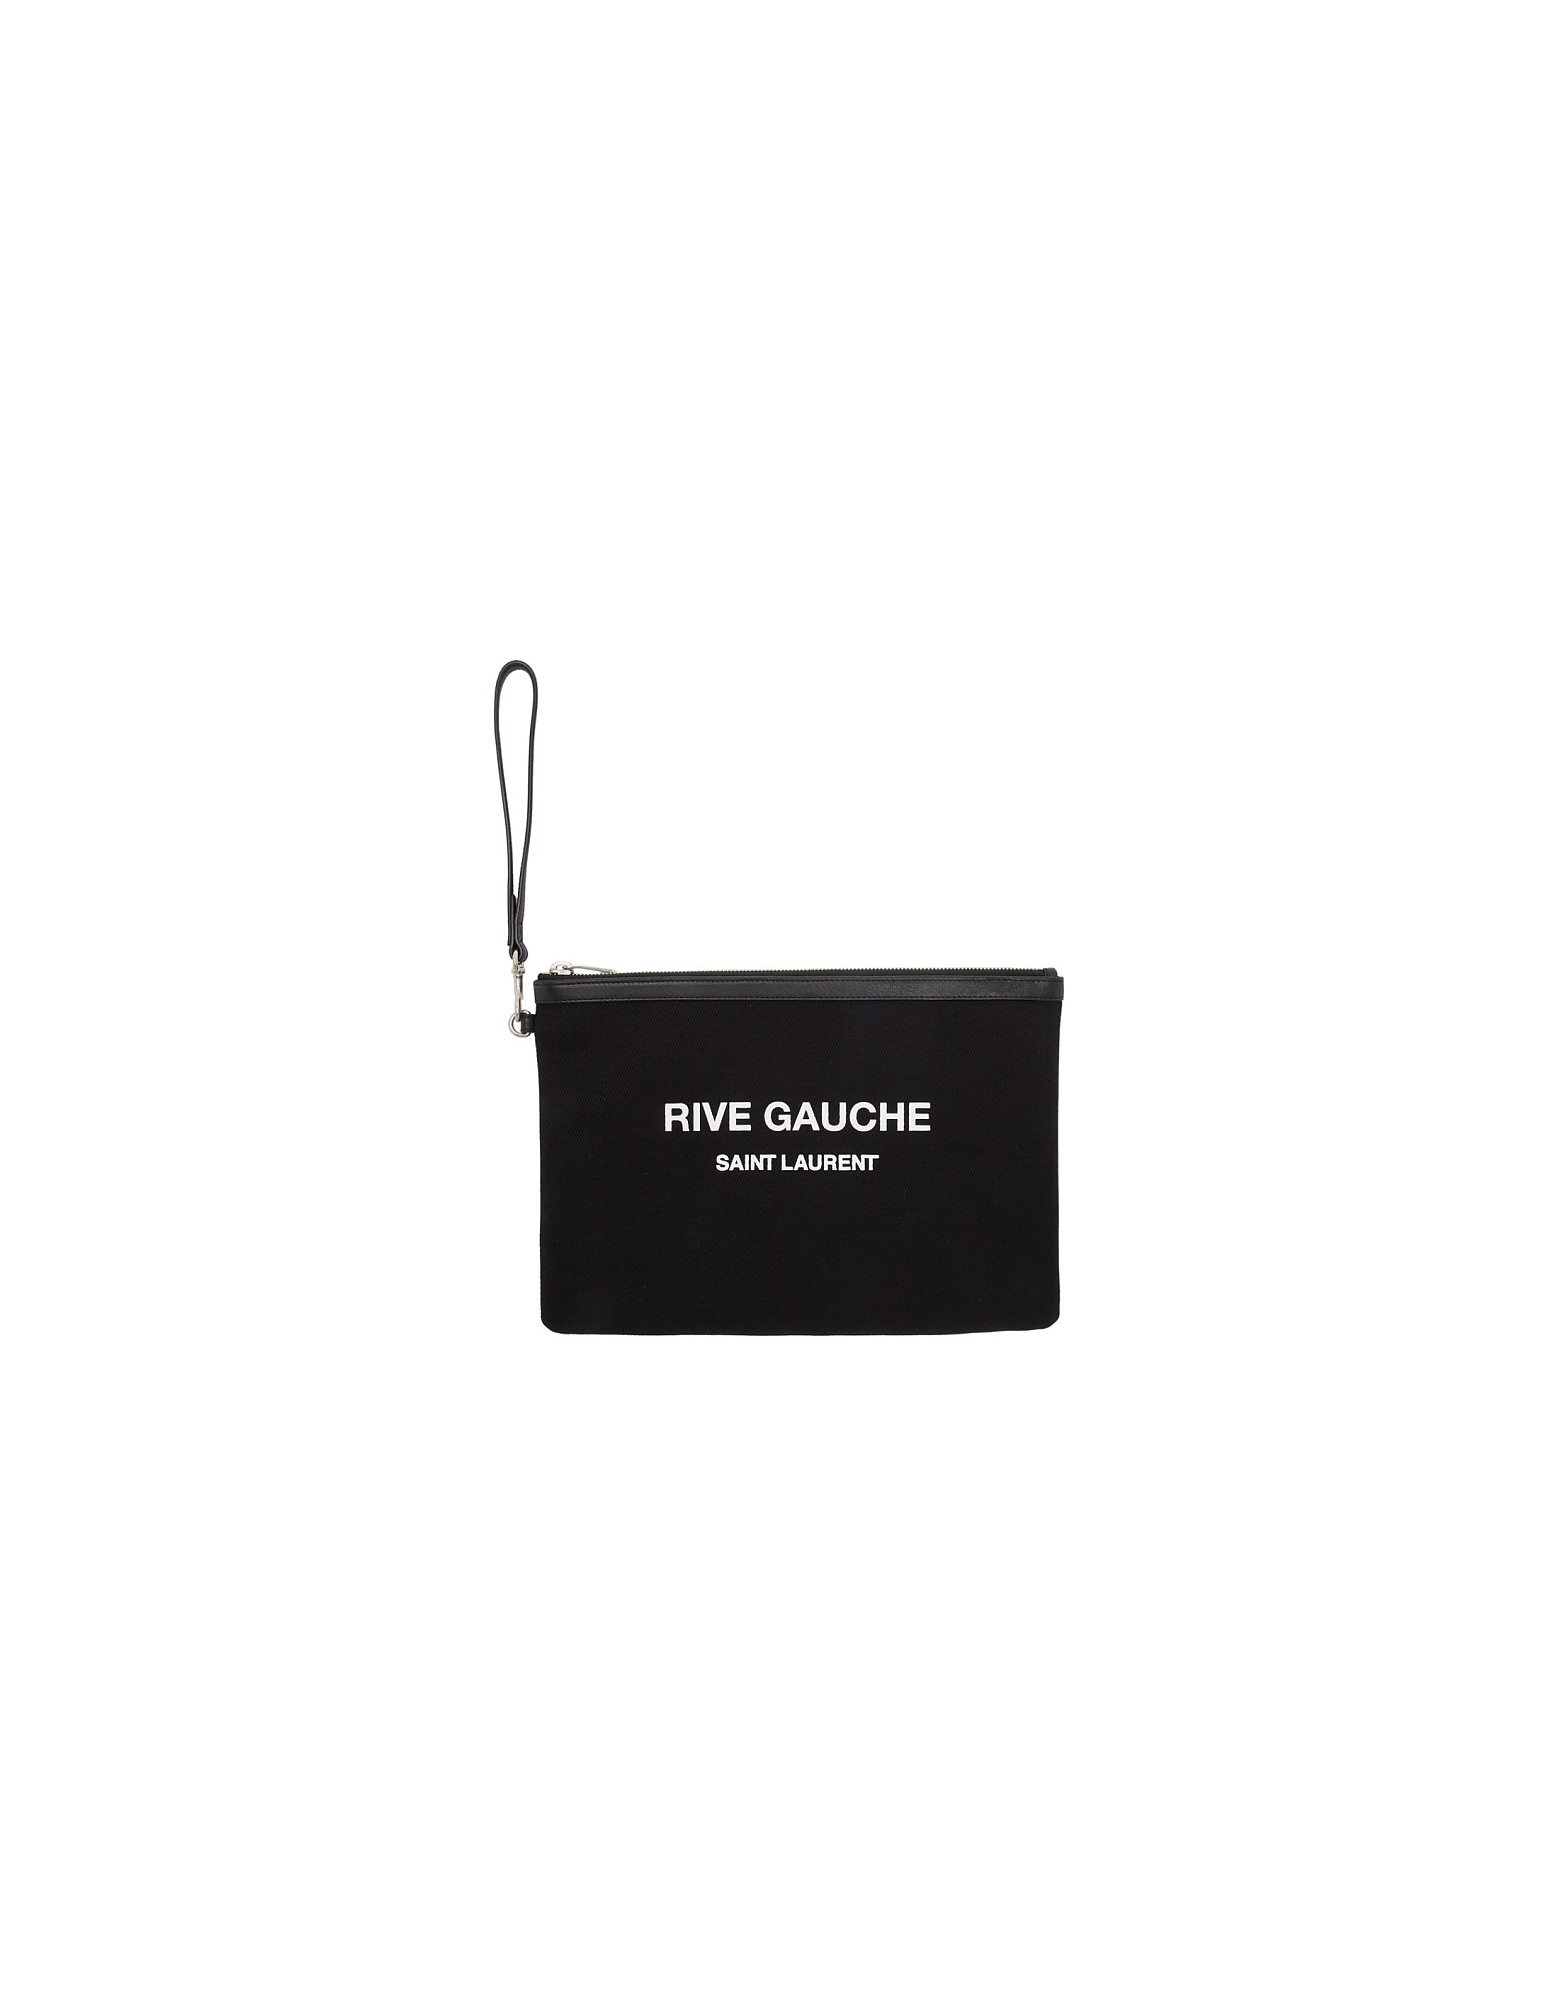 Saint Laurent Designer Handbags, Black Canvas Pouch